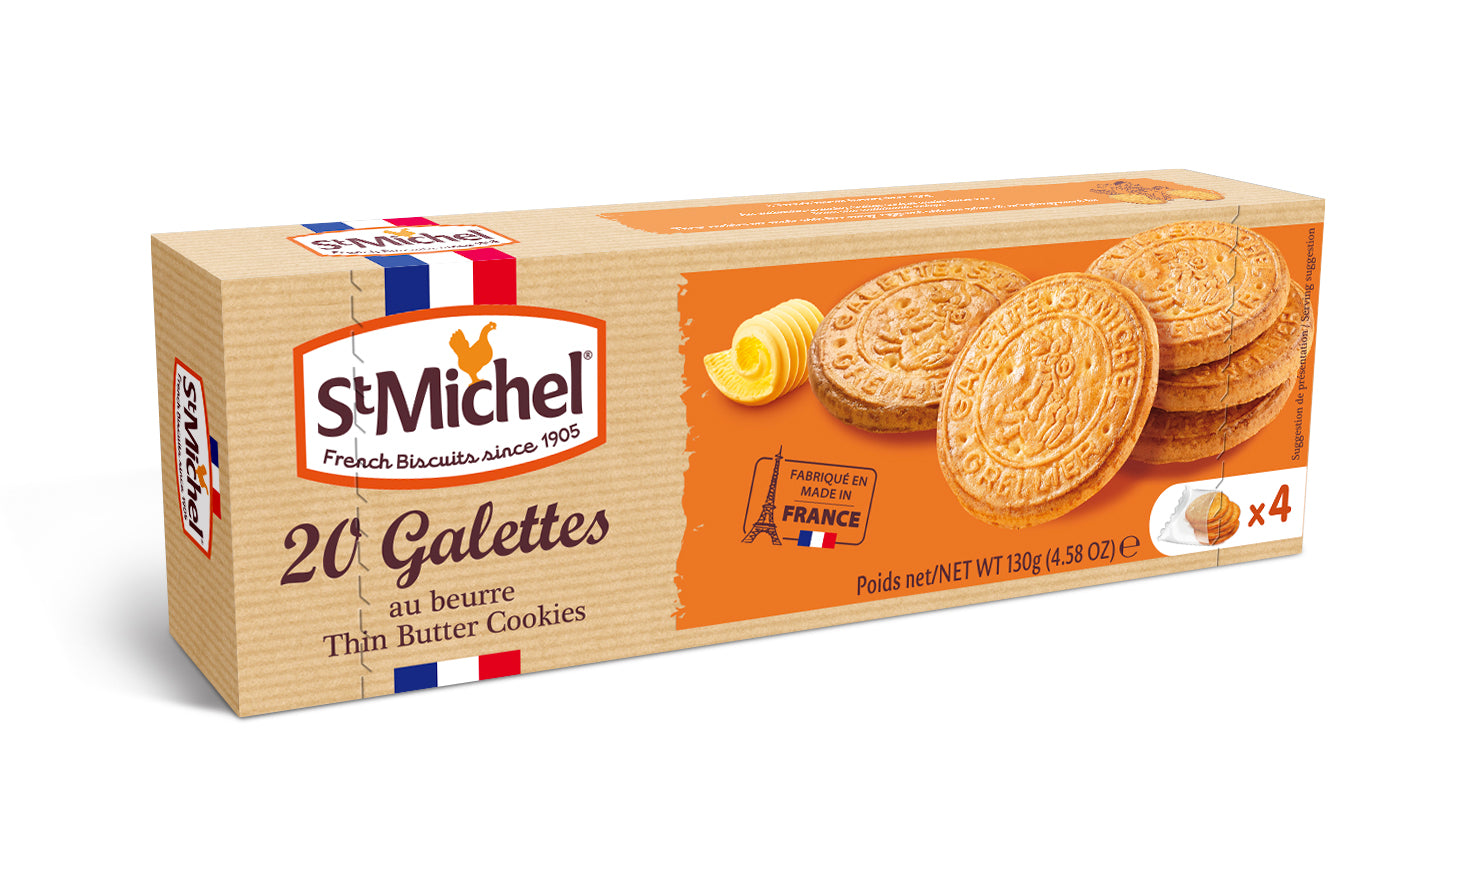 St Michel 20 Galettes Traditional Butter Biscuits 130G (Pack Of 12) - 2071MALL